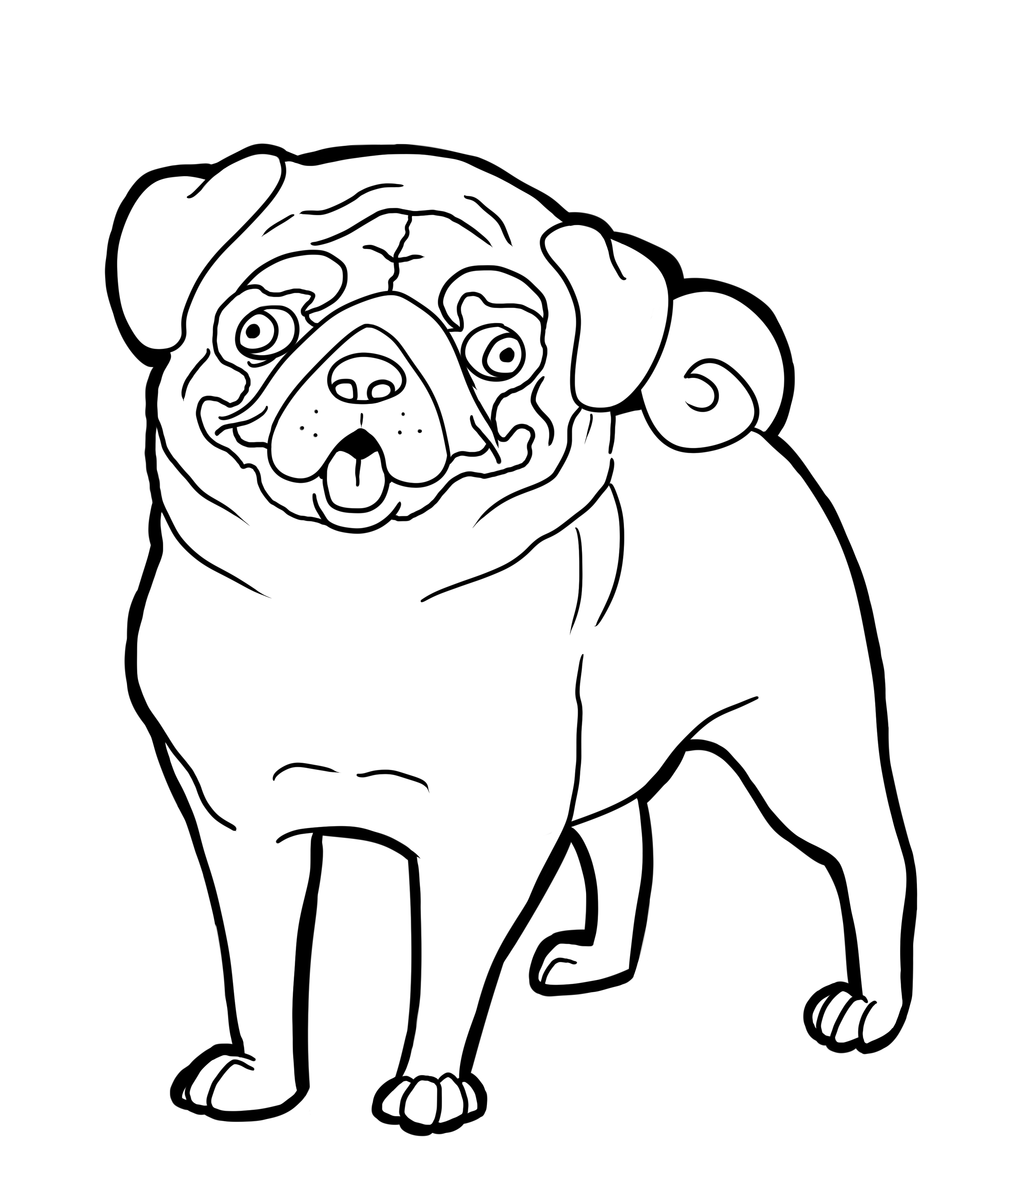 pug puppy coloring pages pug dog coloring pages coloring home pug pages coloring puppy